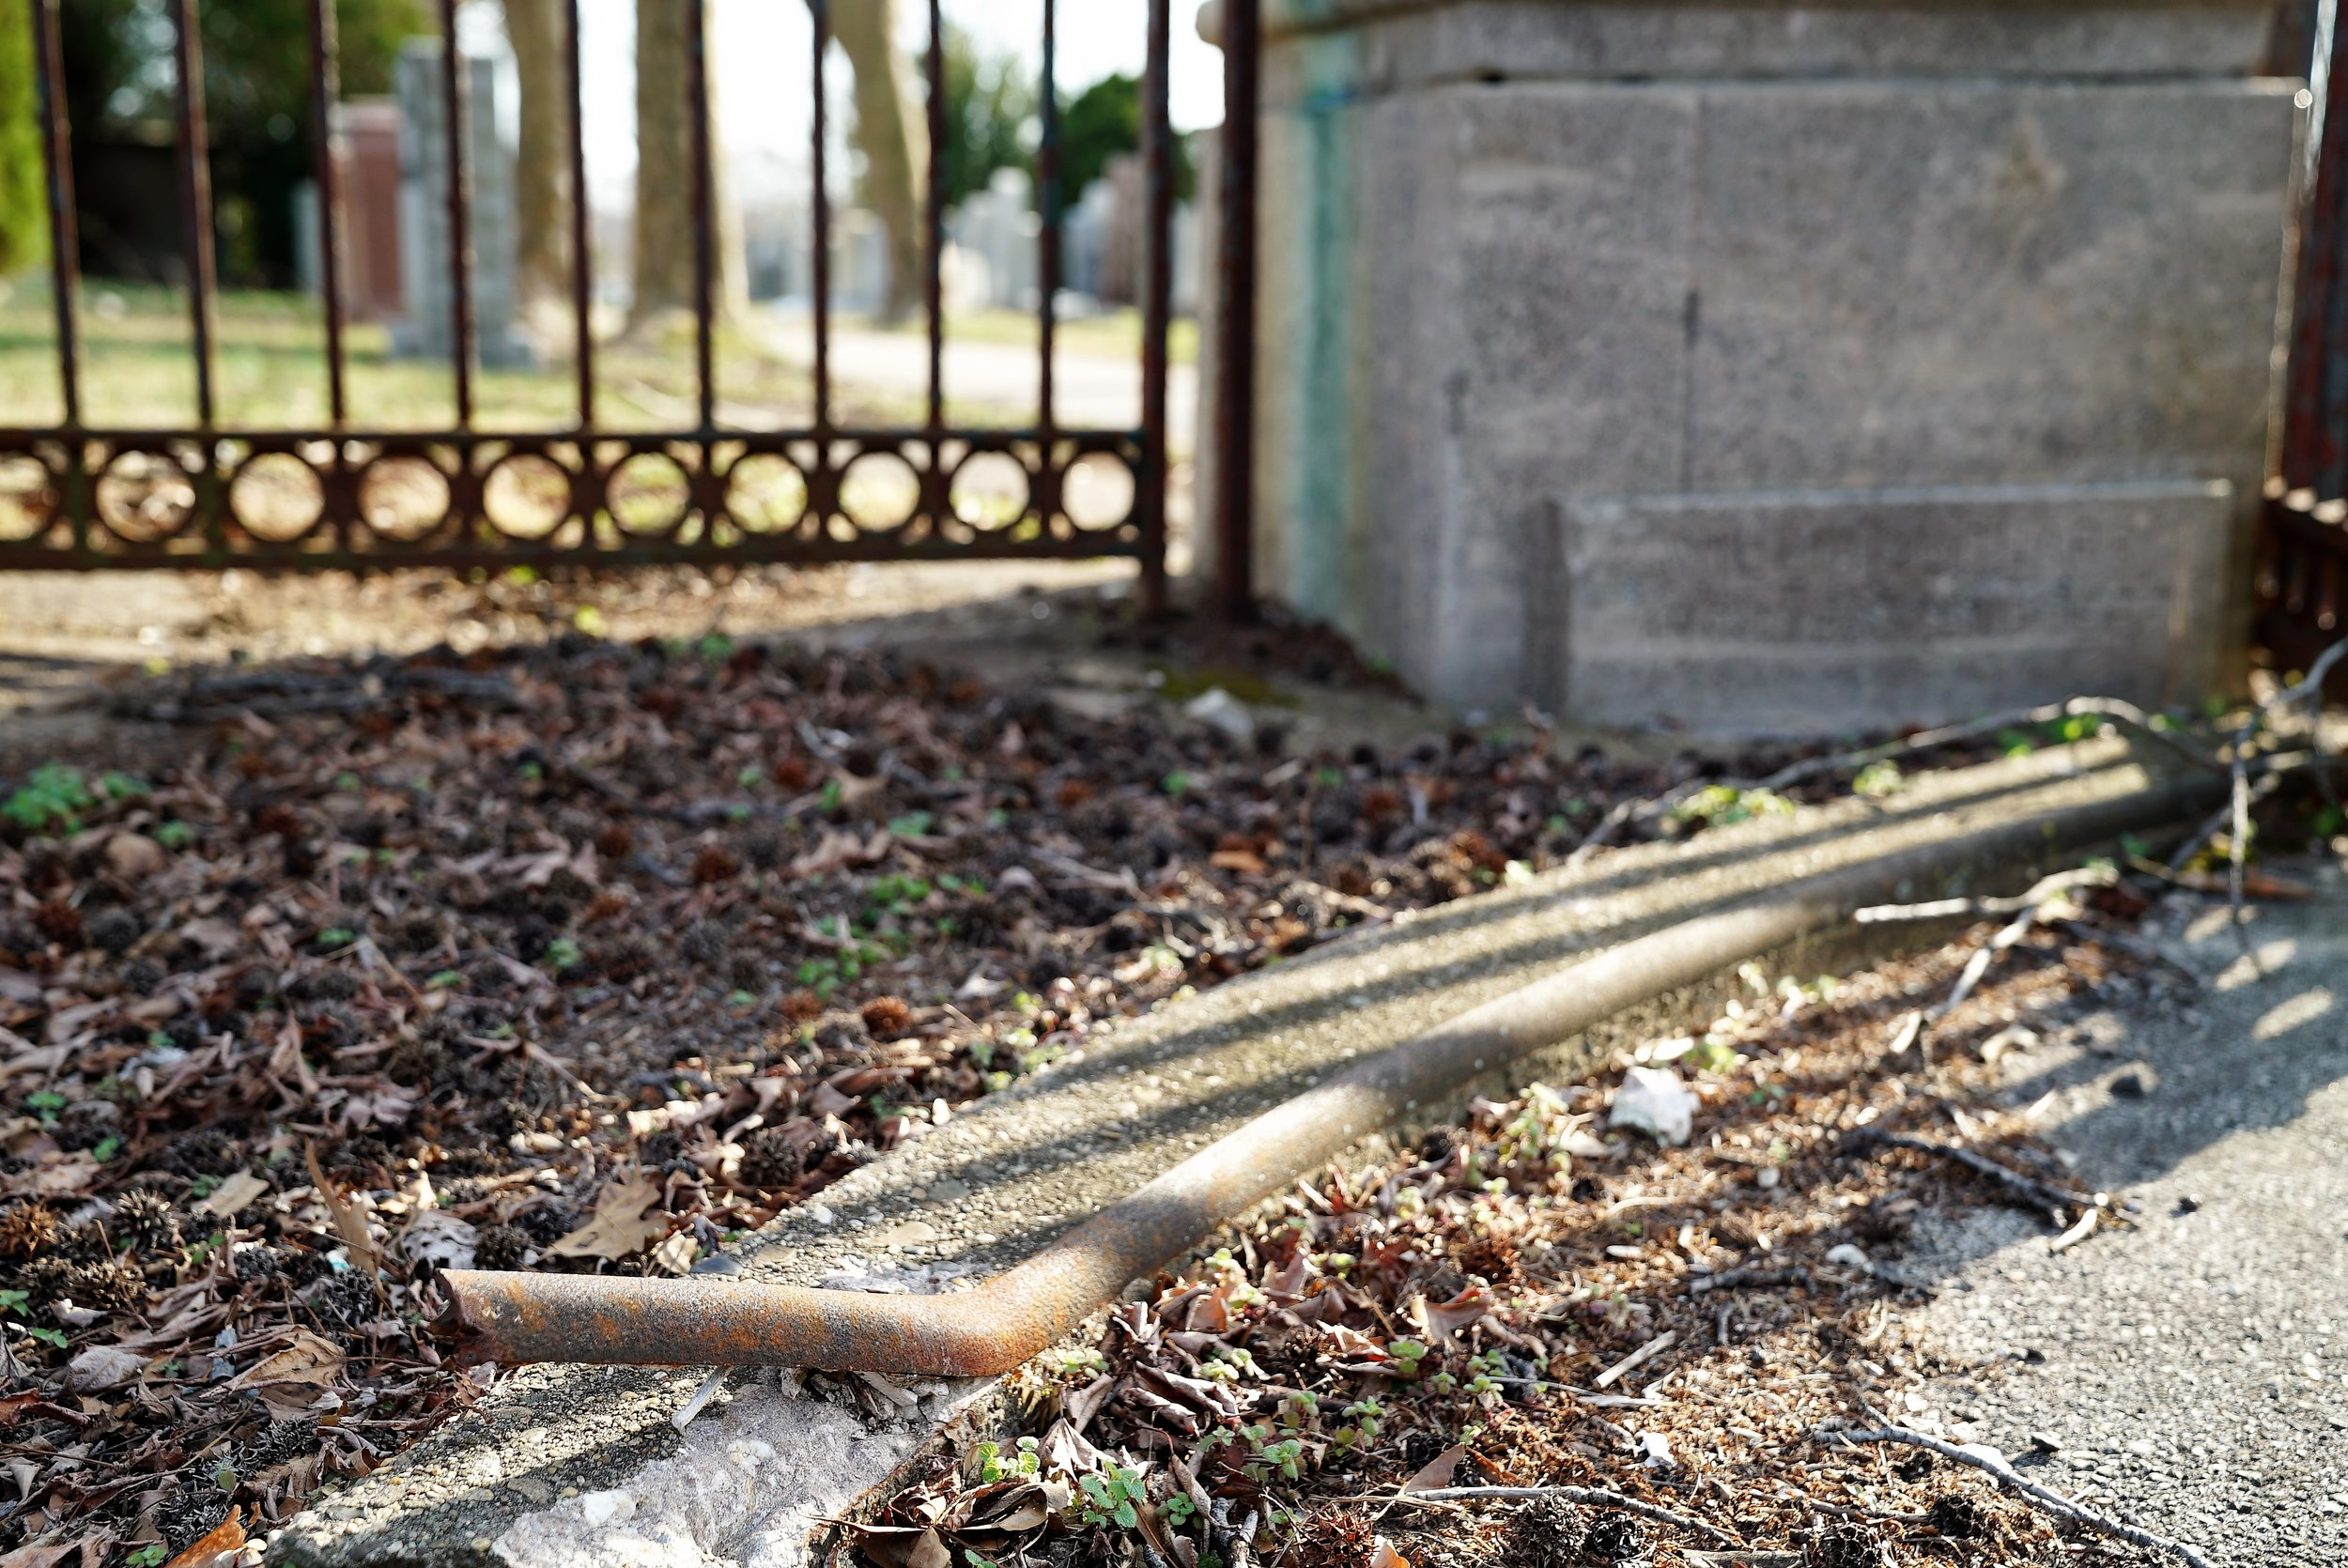 March 6, 2017. A hazardous condition at the entrance to Mount Lebanon Cemetery in Collingdale, Pennsylvania. That is rusty metal that has separated from the curb. I tripped on that.